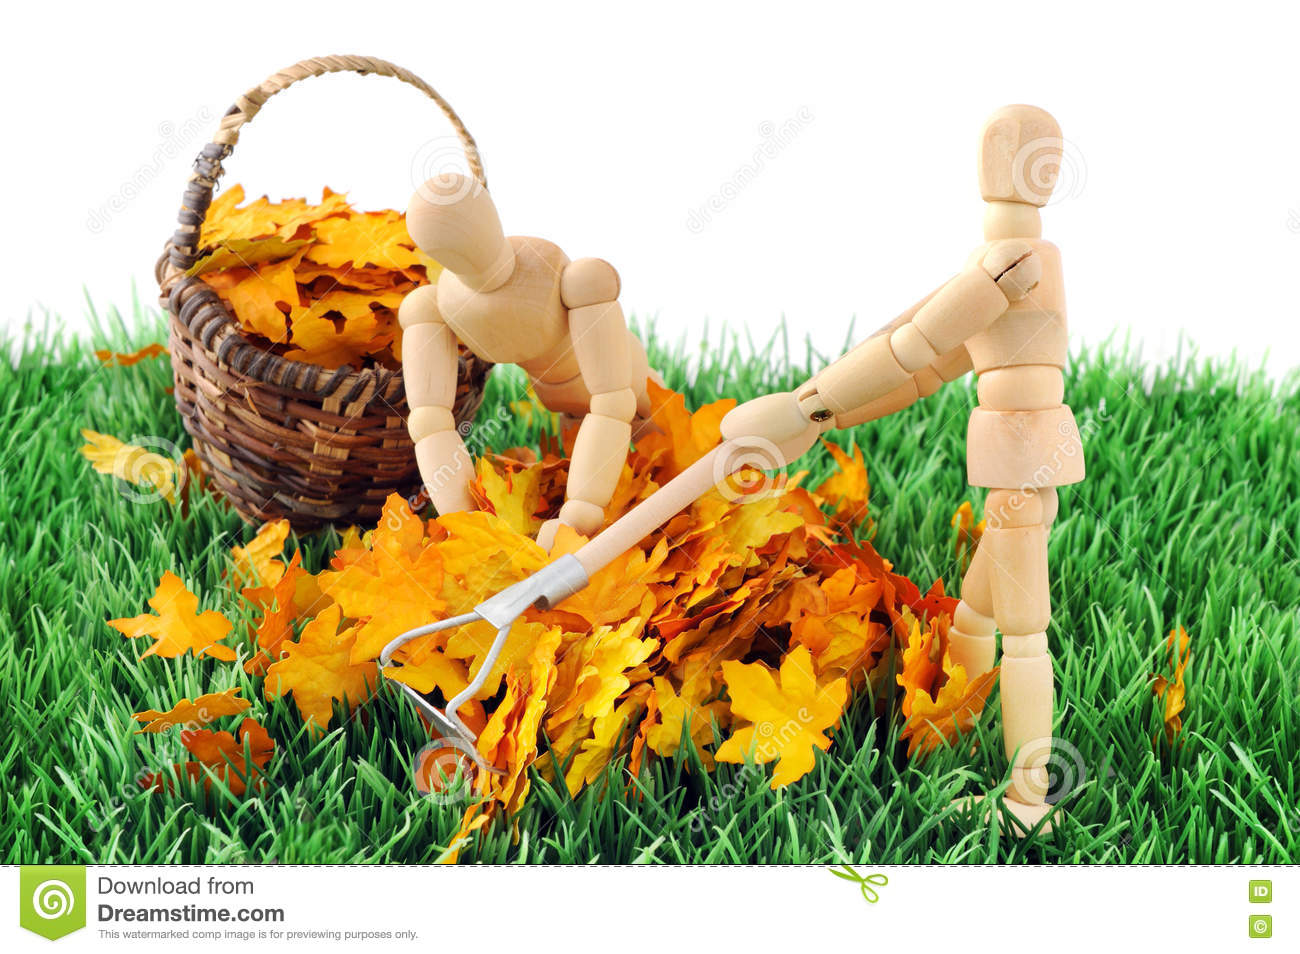 Download Wooden Figure Cleanup The Garden From Autumn Leave Stock Photo - Image of autumn, grass: 73381736